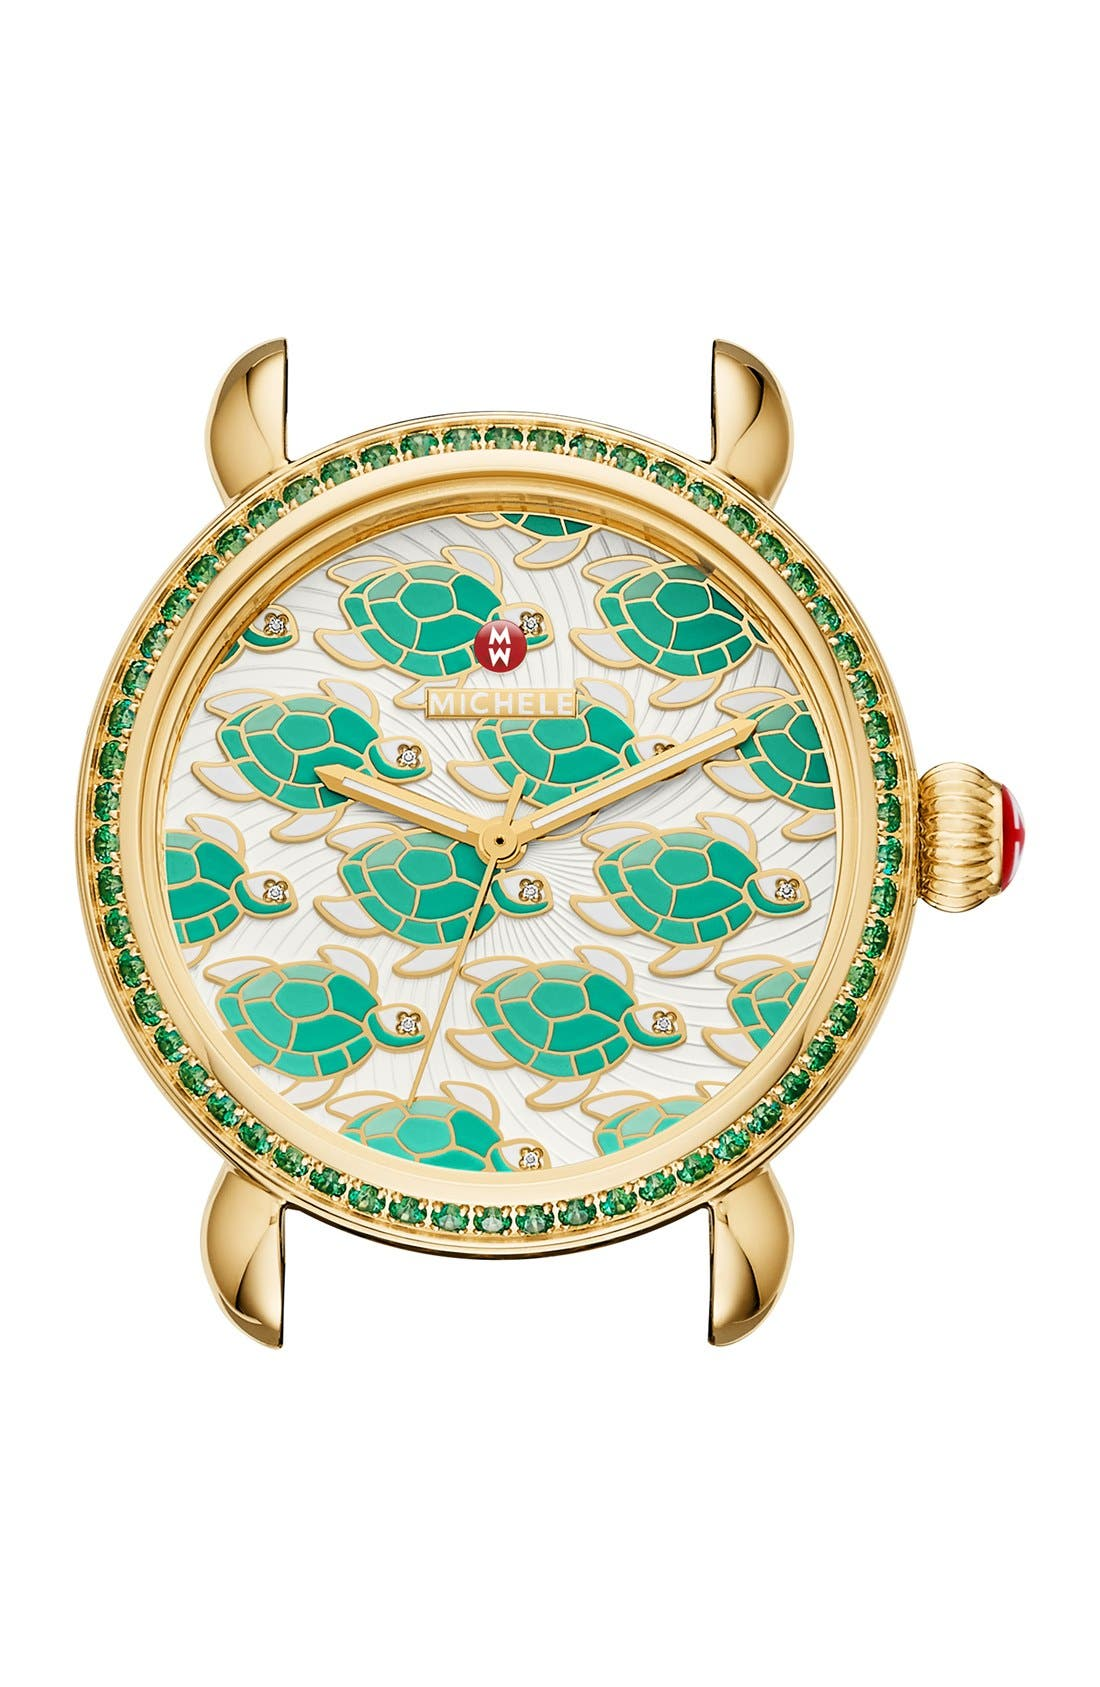 Main Image - MICHELE 'Exotic Creatures' Bracelet Watch Case, 36mm